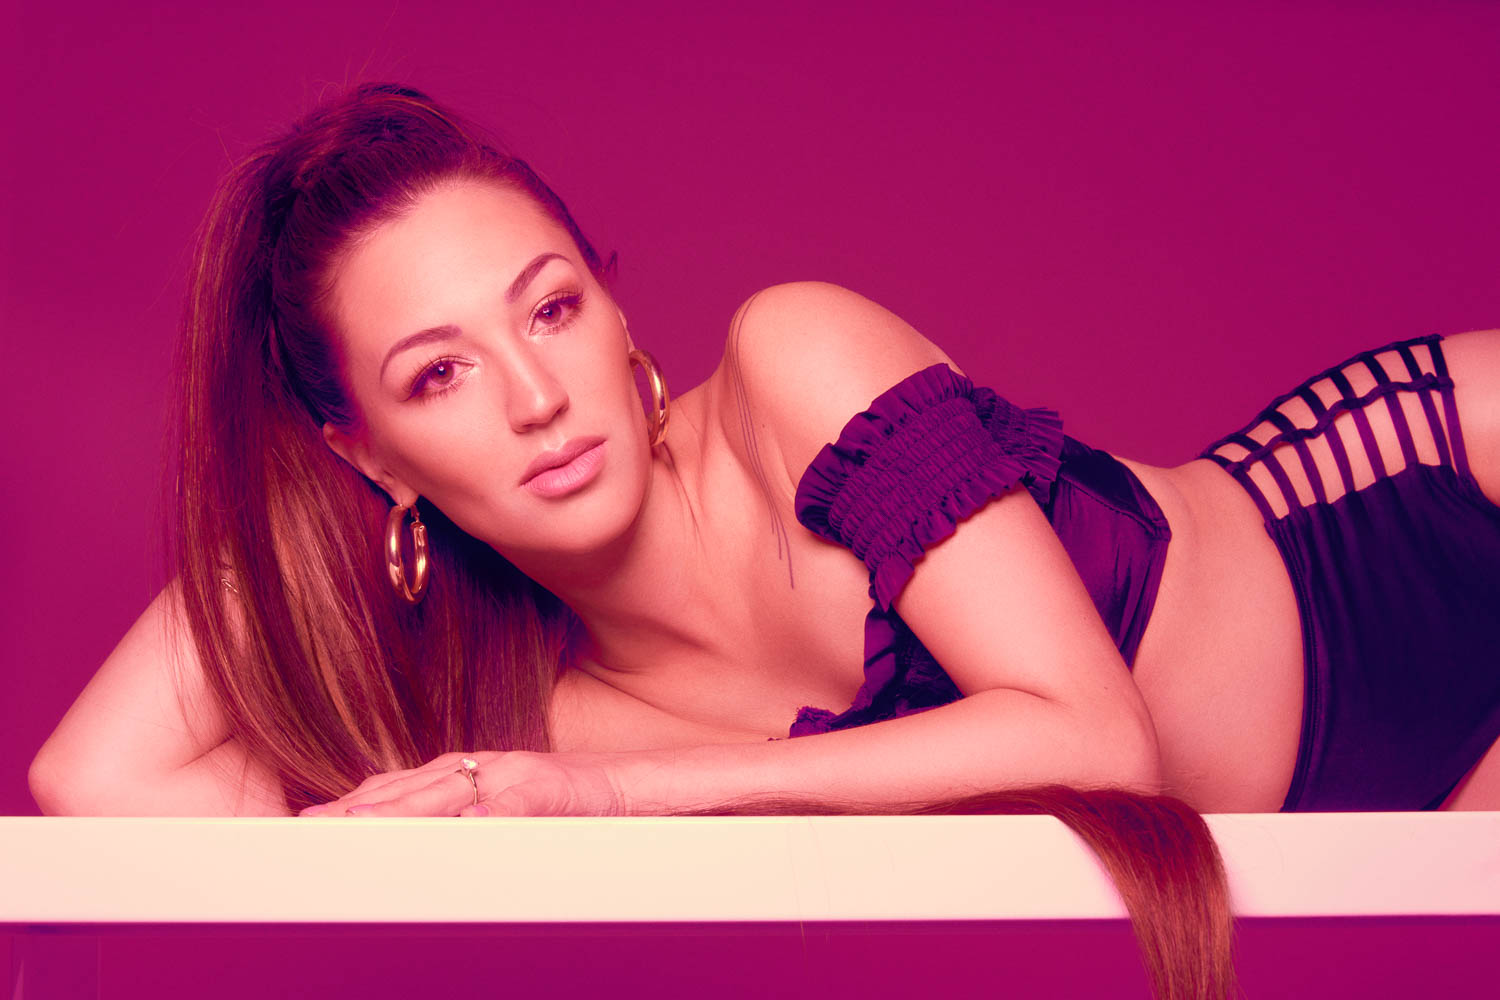 Woman laying on a white surface with pink background